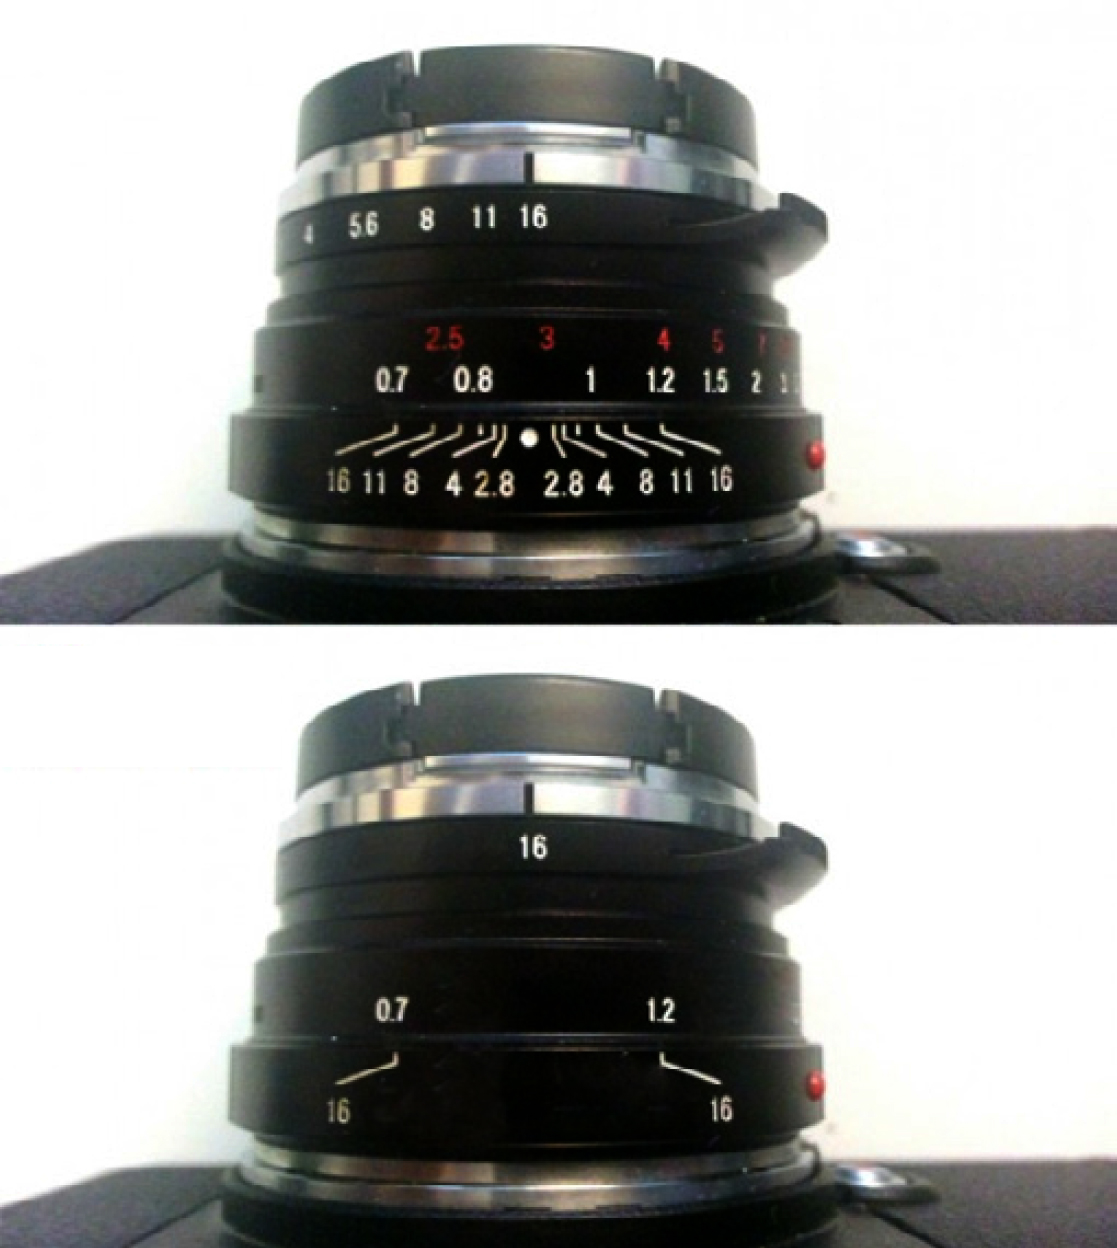 setting up zone focusing on a lens